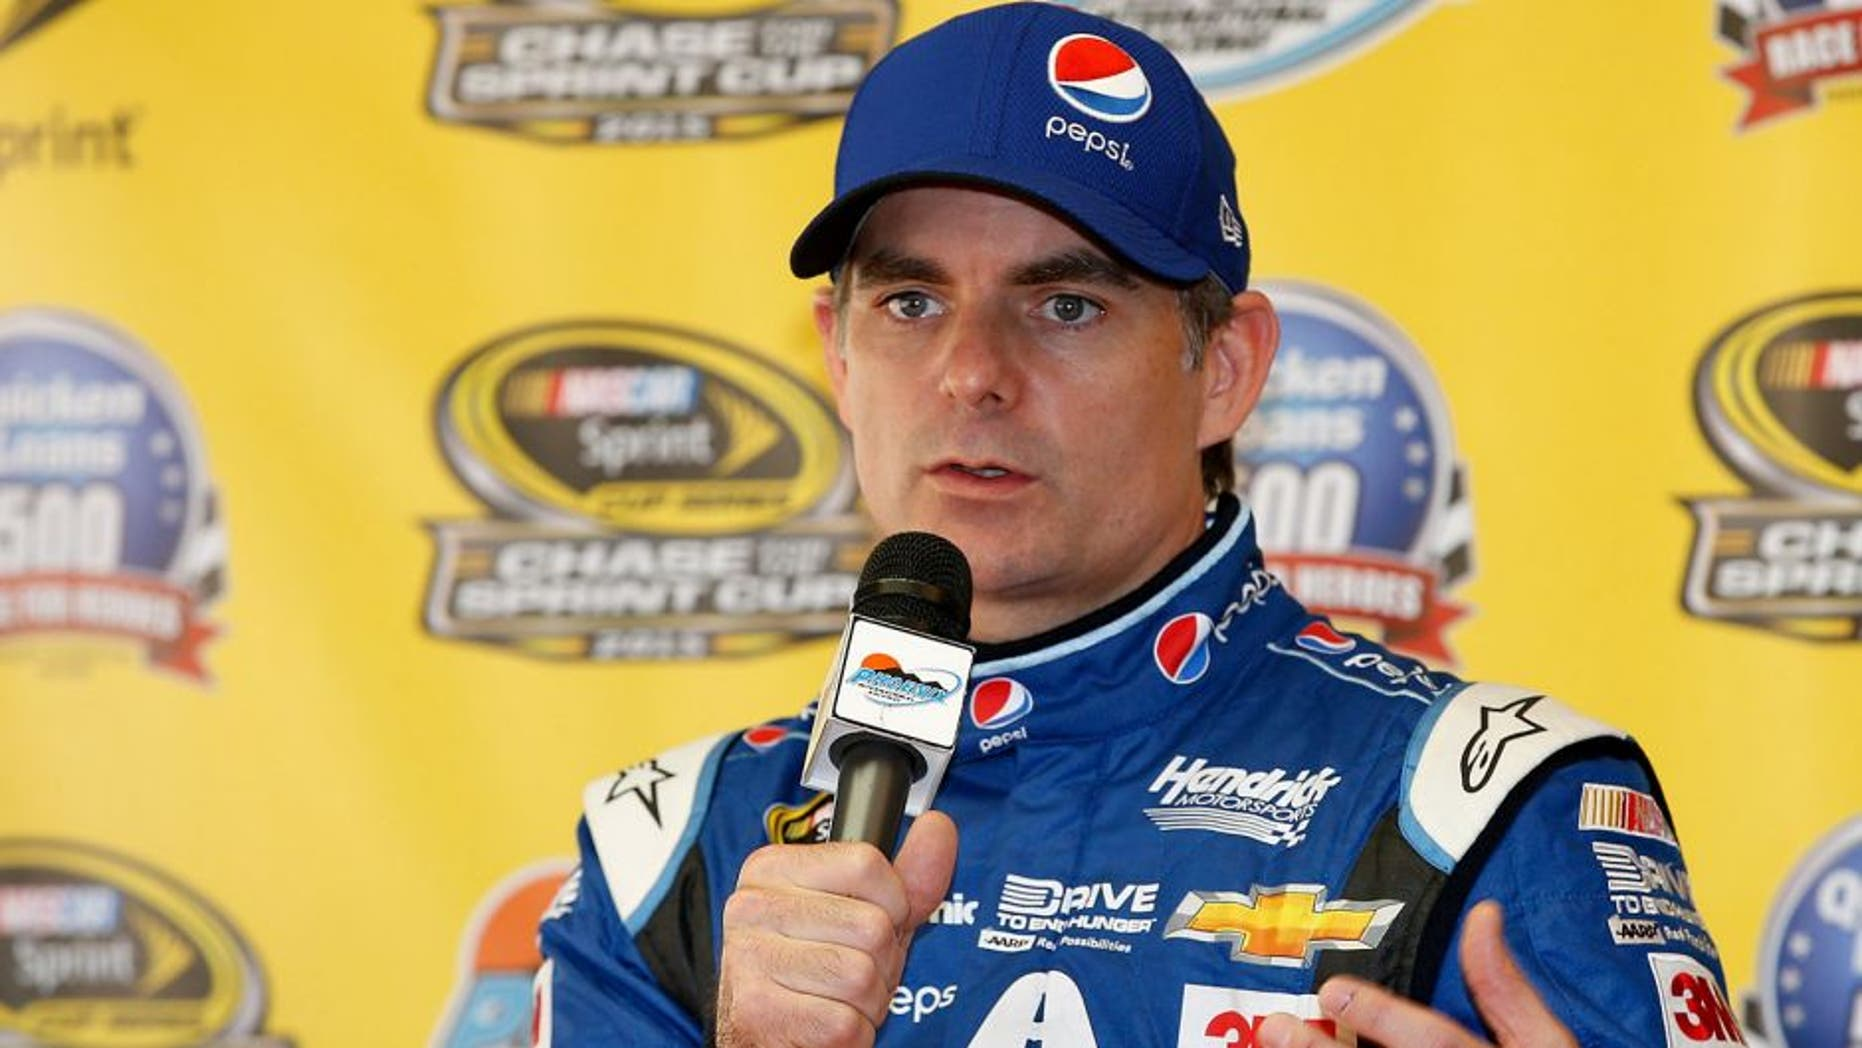 AVONDALE, AZ - NOVEMBER 13: Jeff Gordon, driver of the #24 Pepsi Chevrolet, speaks at a press conference following practice for the NASCAR Sprint Cup Series Quicken Loans Race for Heroes 500 at Phoenix International Raceway on November 13, 2015 in Avondale, Arizona. (Photo by Todd Warshaw/Getty Images)